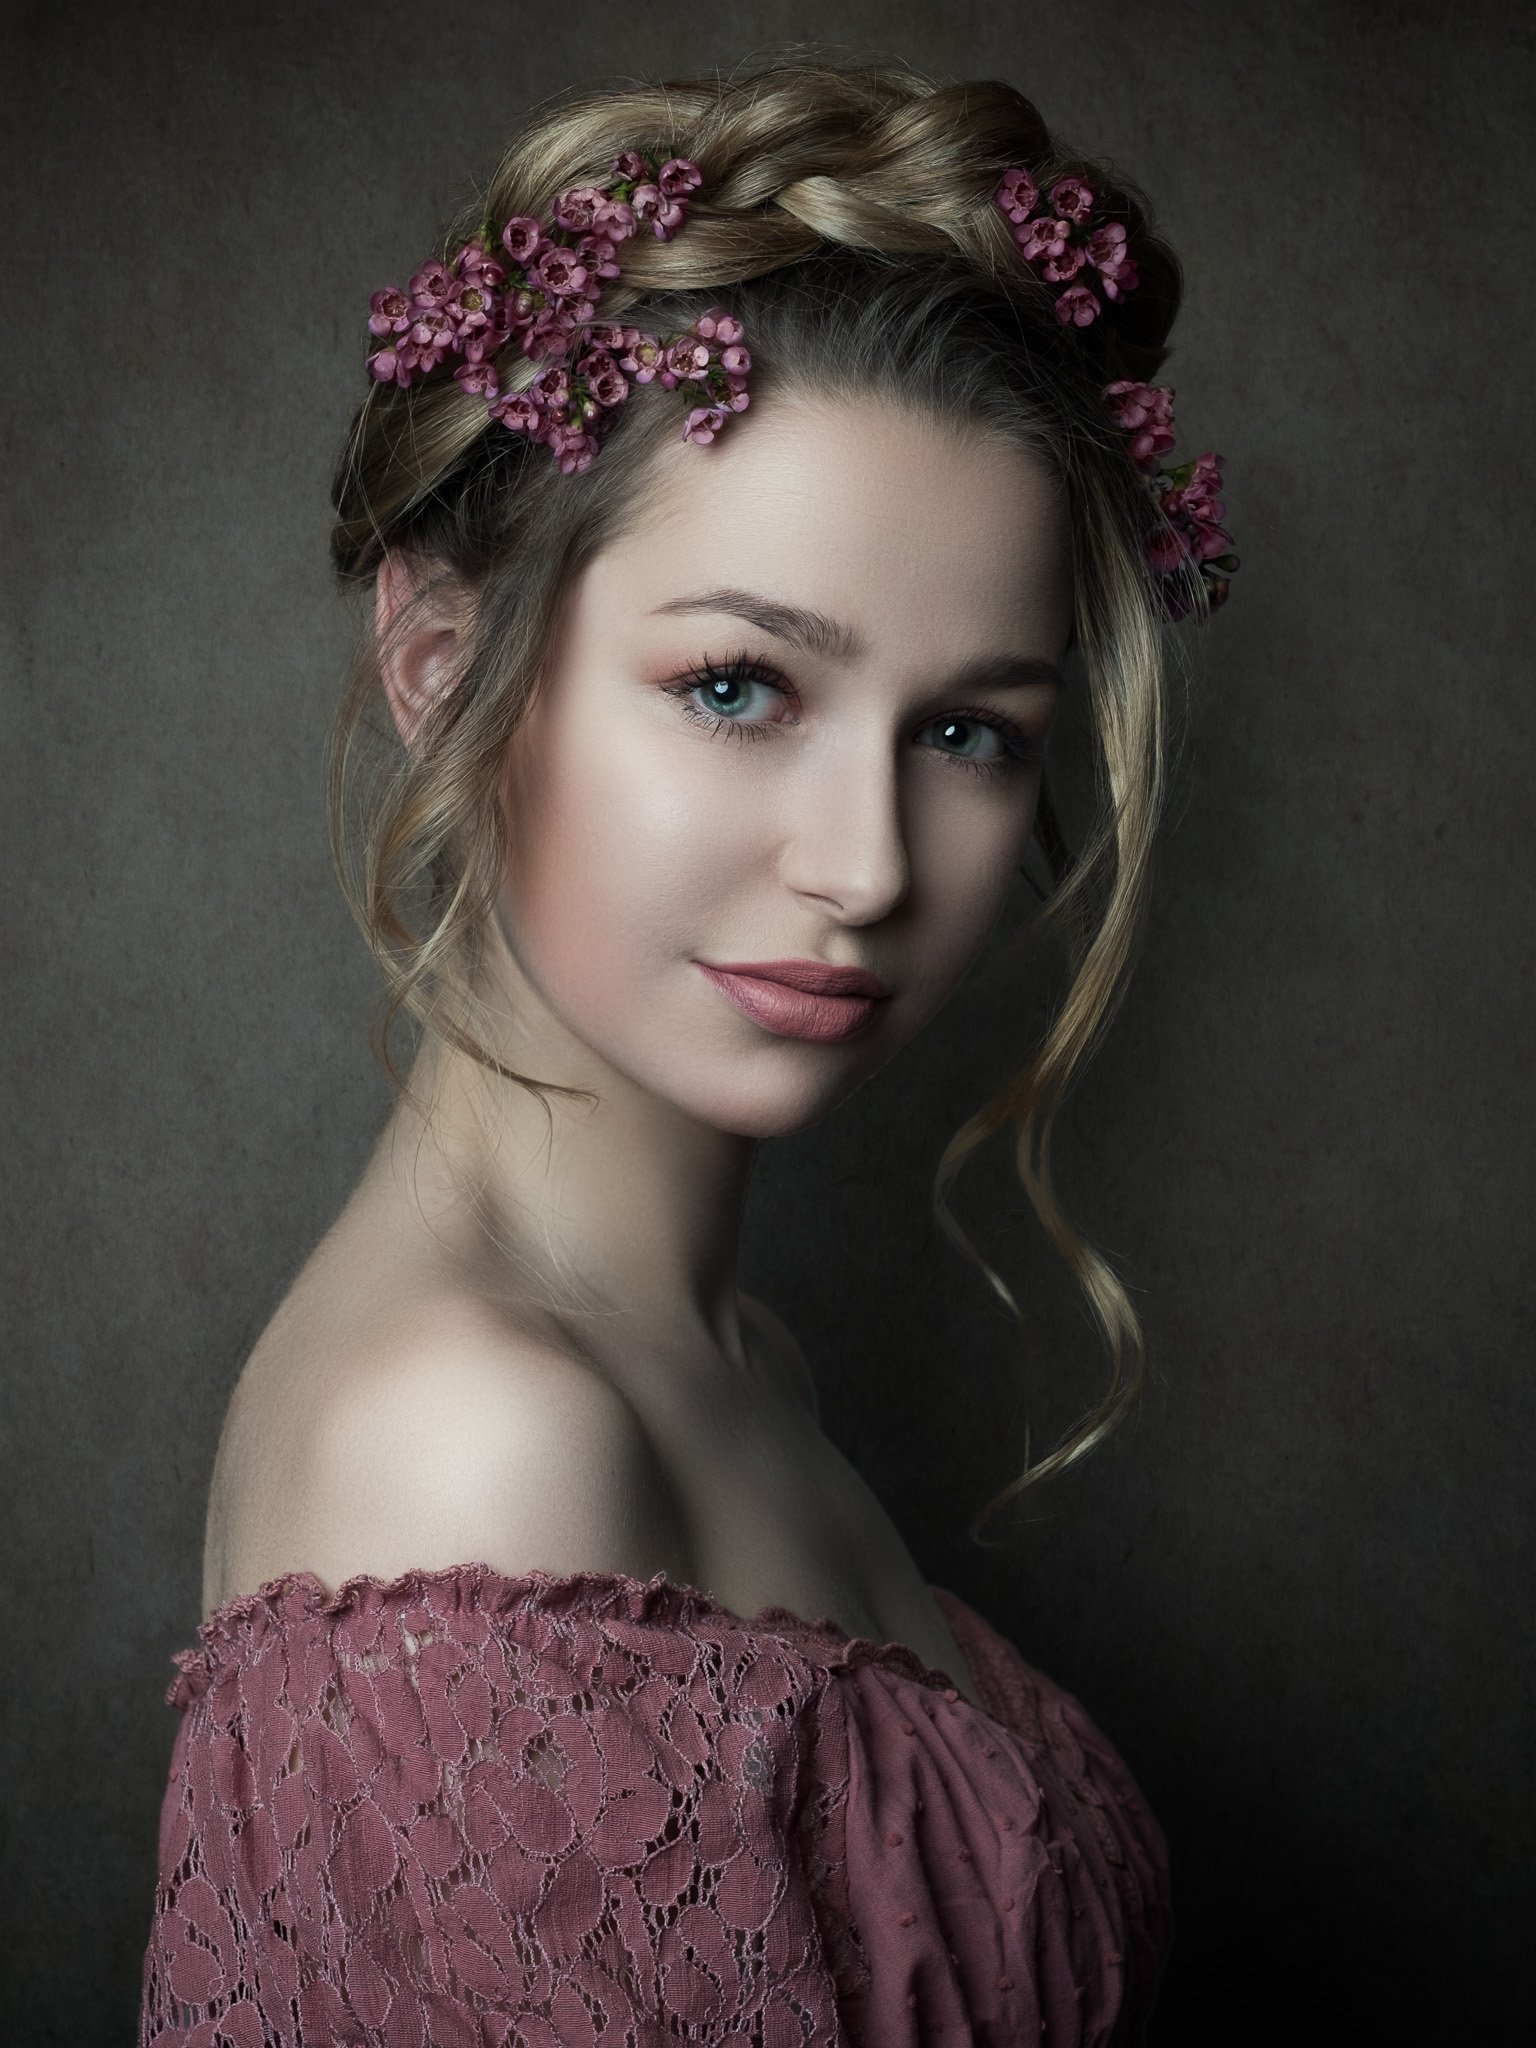 portrait, hairflowers, michael schnabl, woman, Michael Schnabl